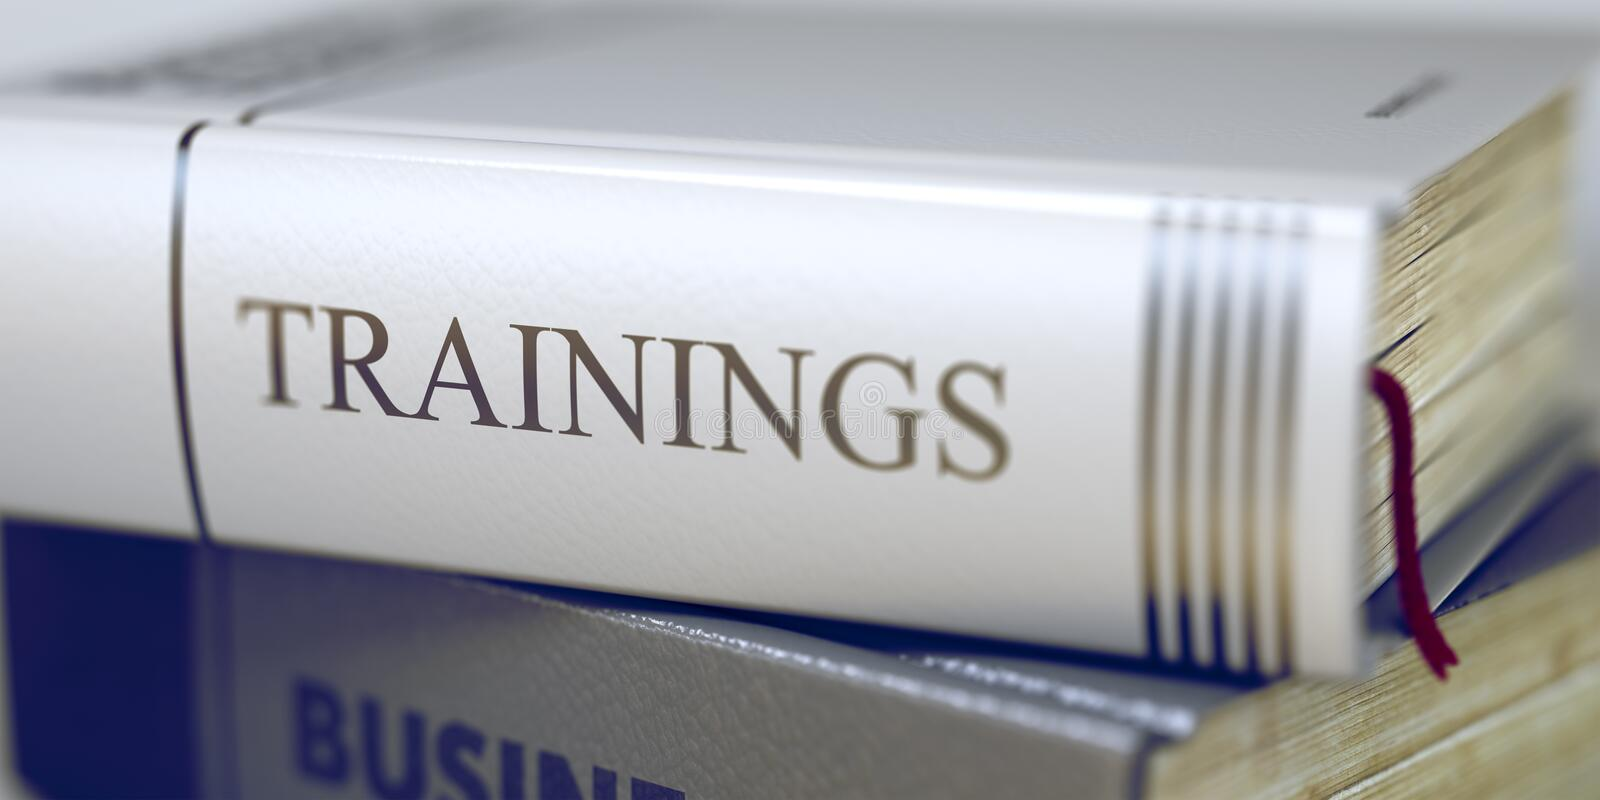 Trainings Concept on Book Title. 3D. Trainings. Book Title on the Spine. Trainings - Business Book Title. Close-up of a Book with the Title on Spine Trainings stock photo